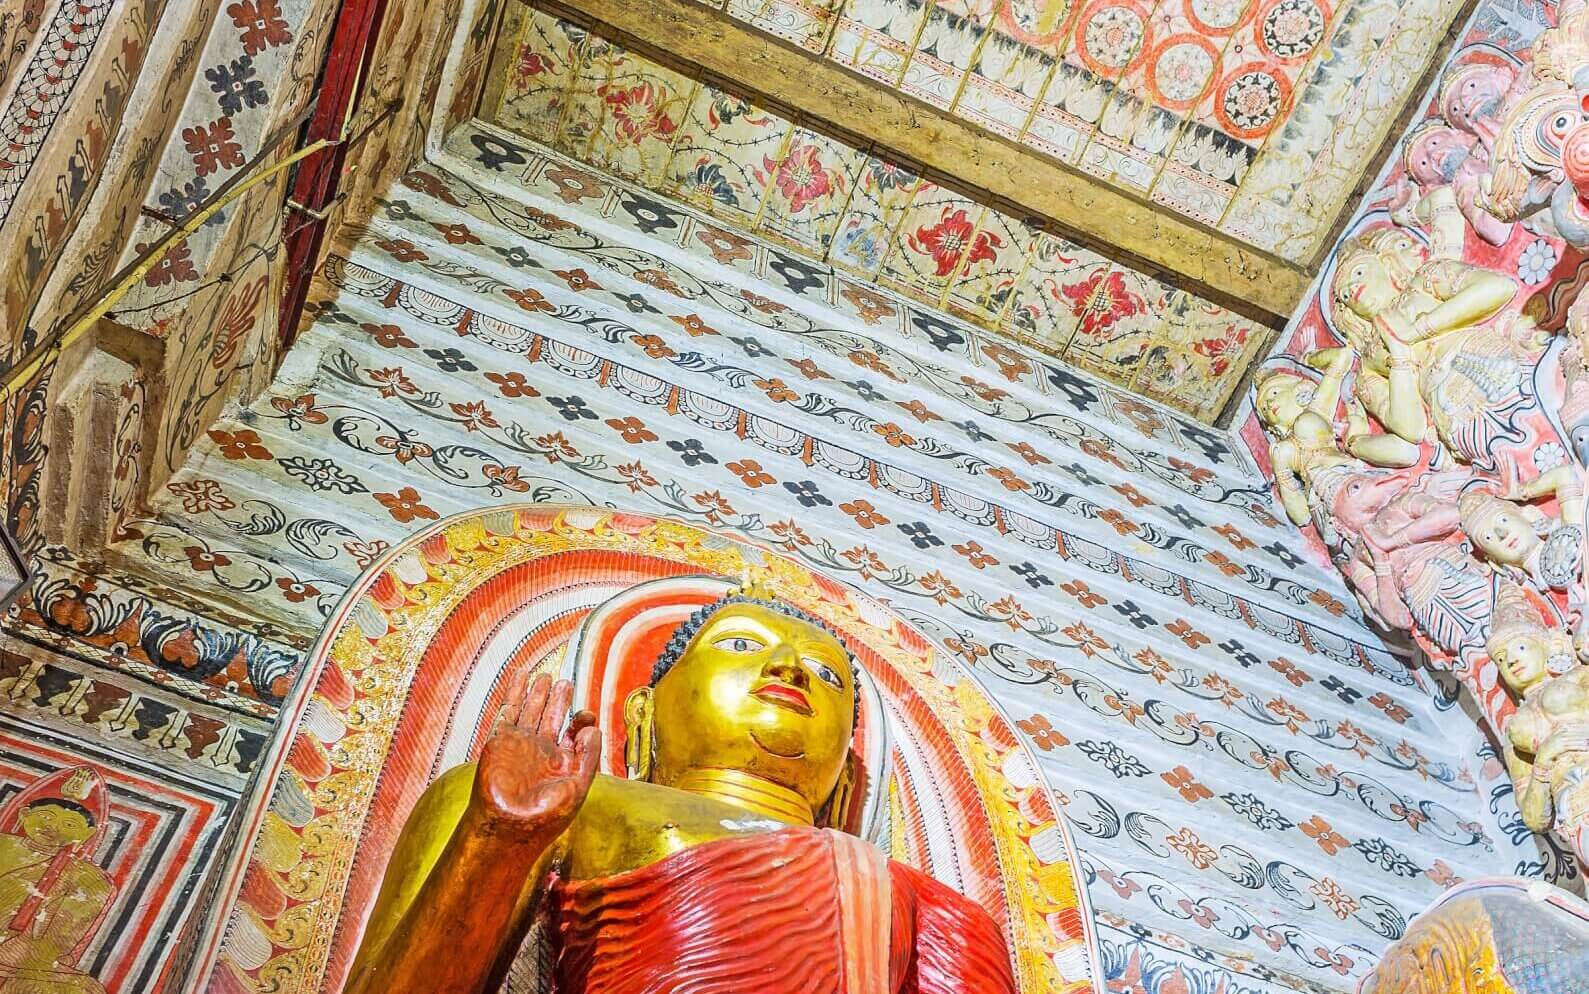 Image of The ceiling and walls Lankathilaka Vihara covered with fine floral patterns sri lanka